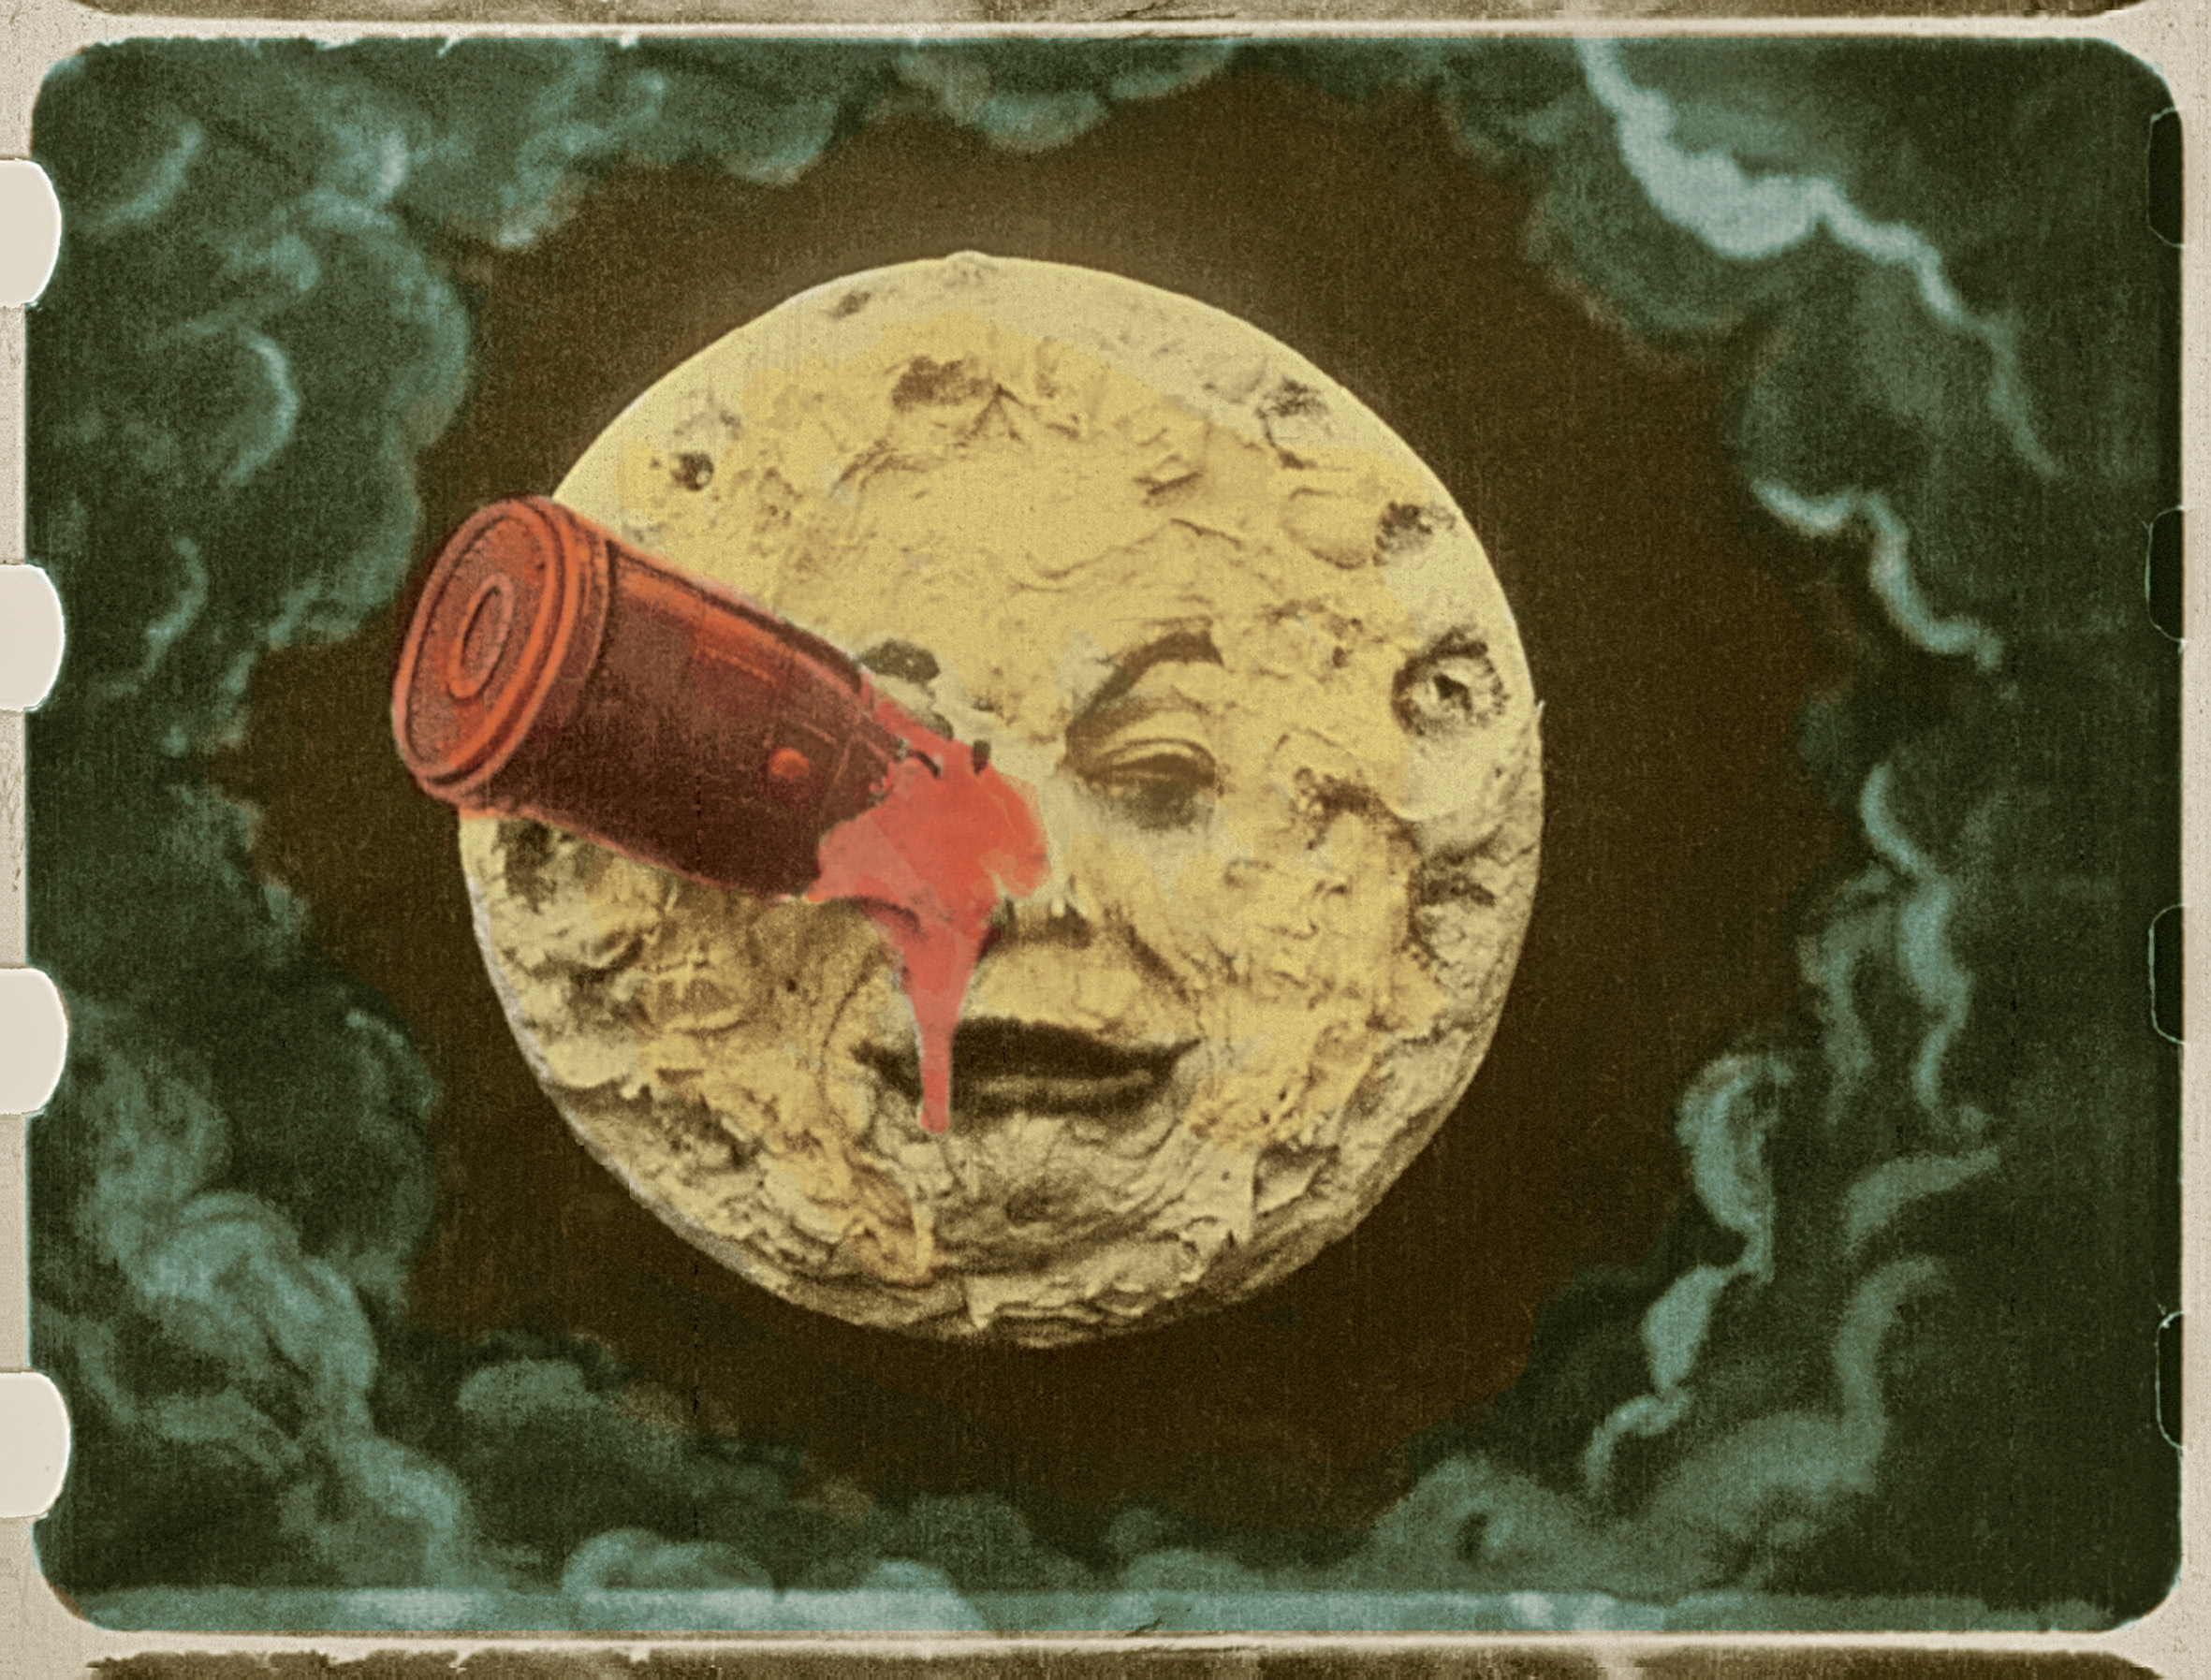 hand-painted still from Méliês' A Trip to the Moon